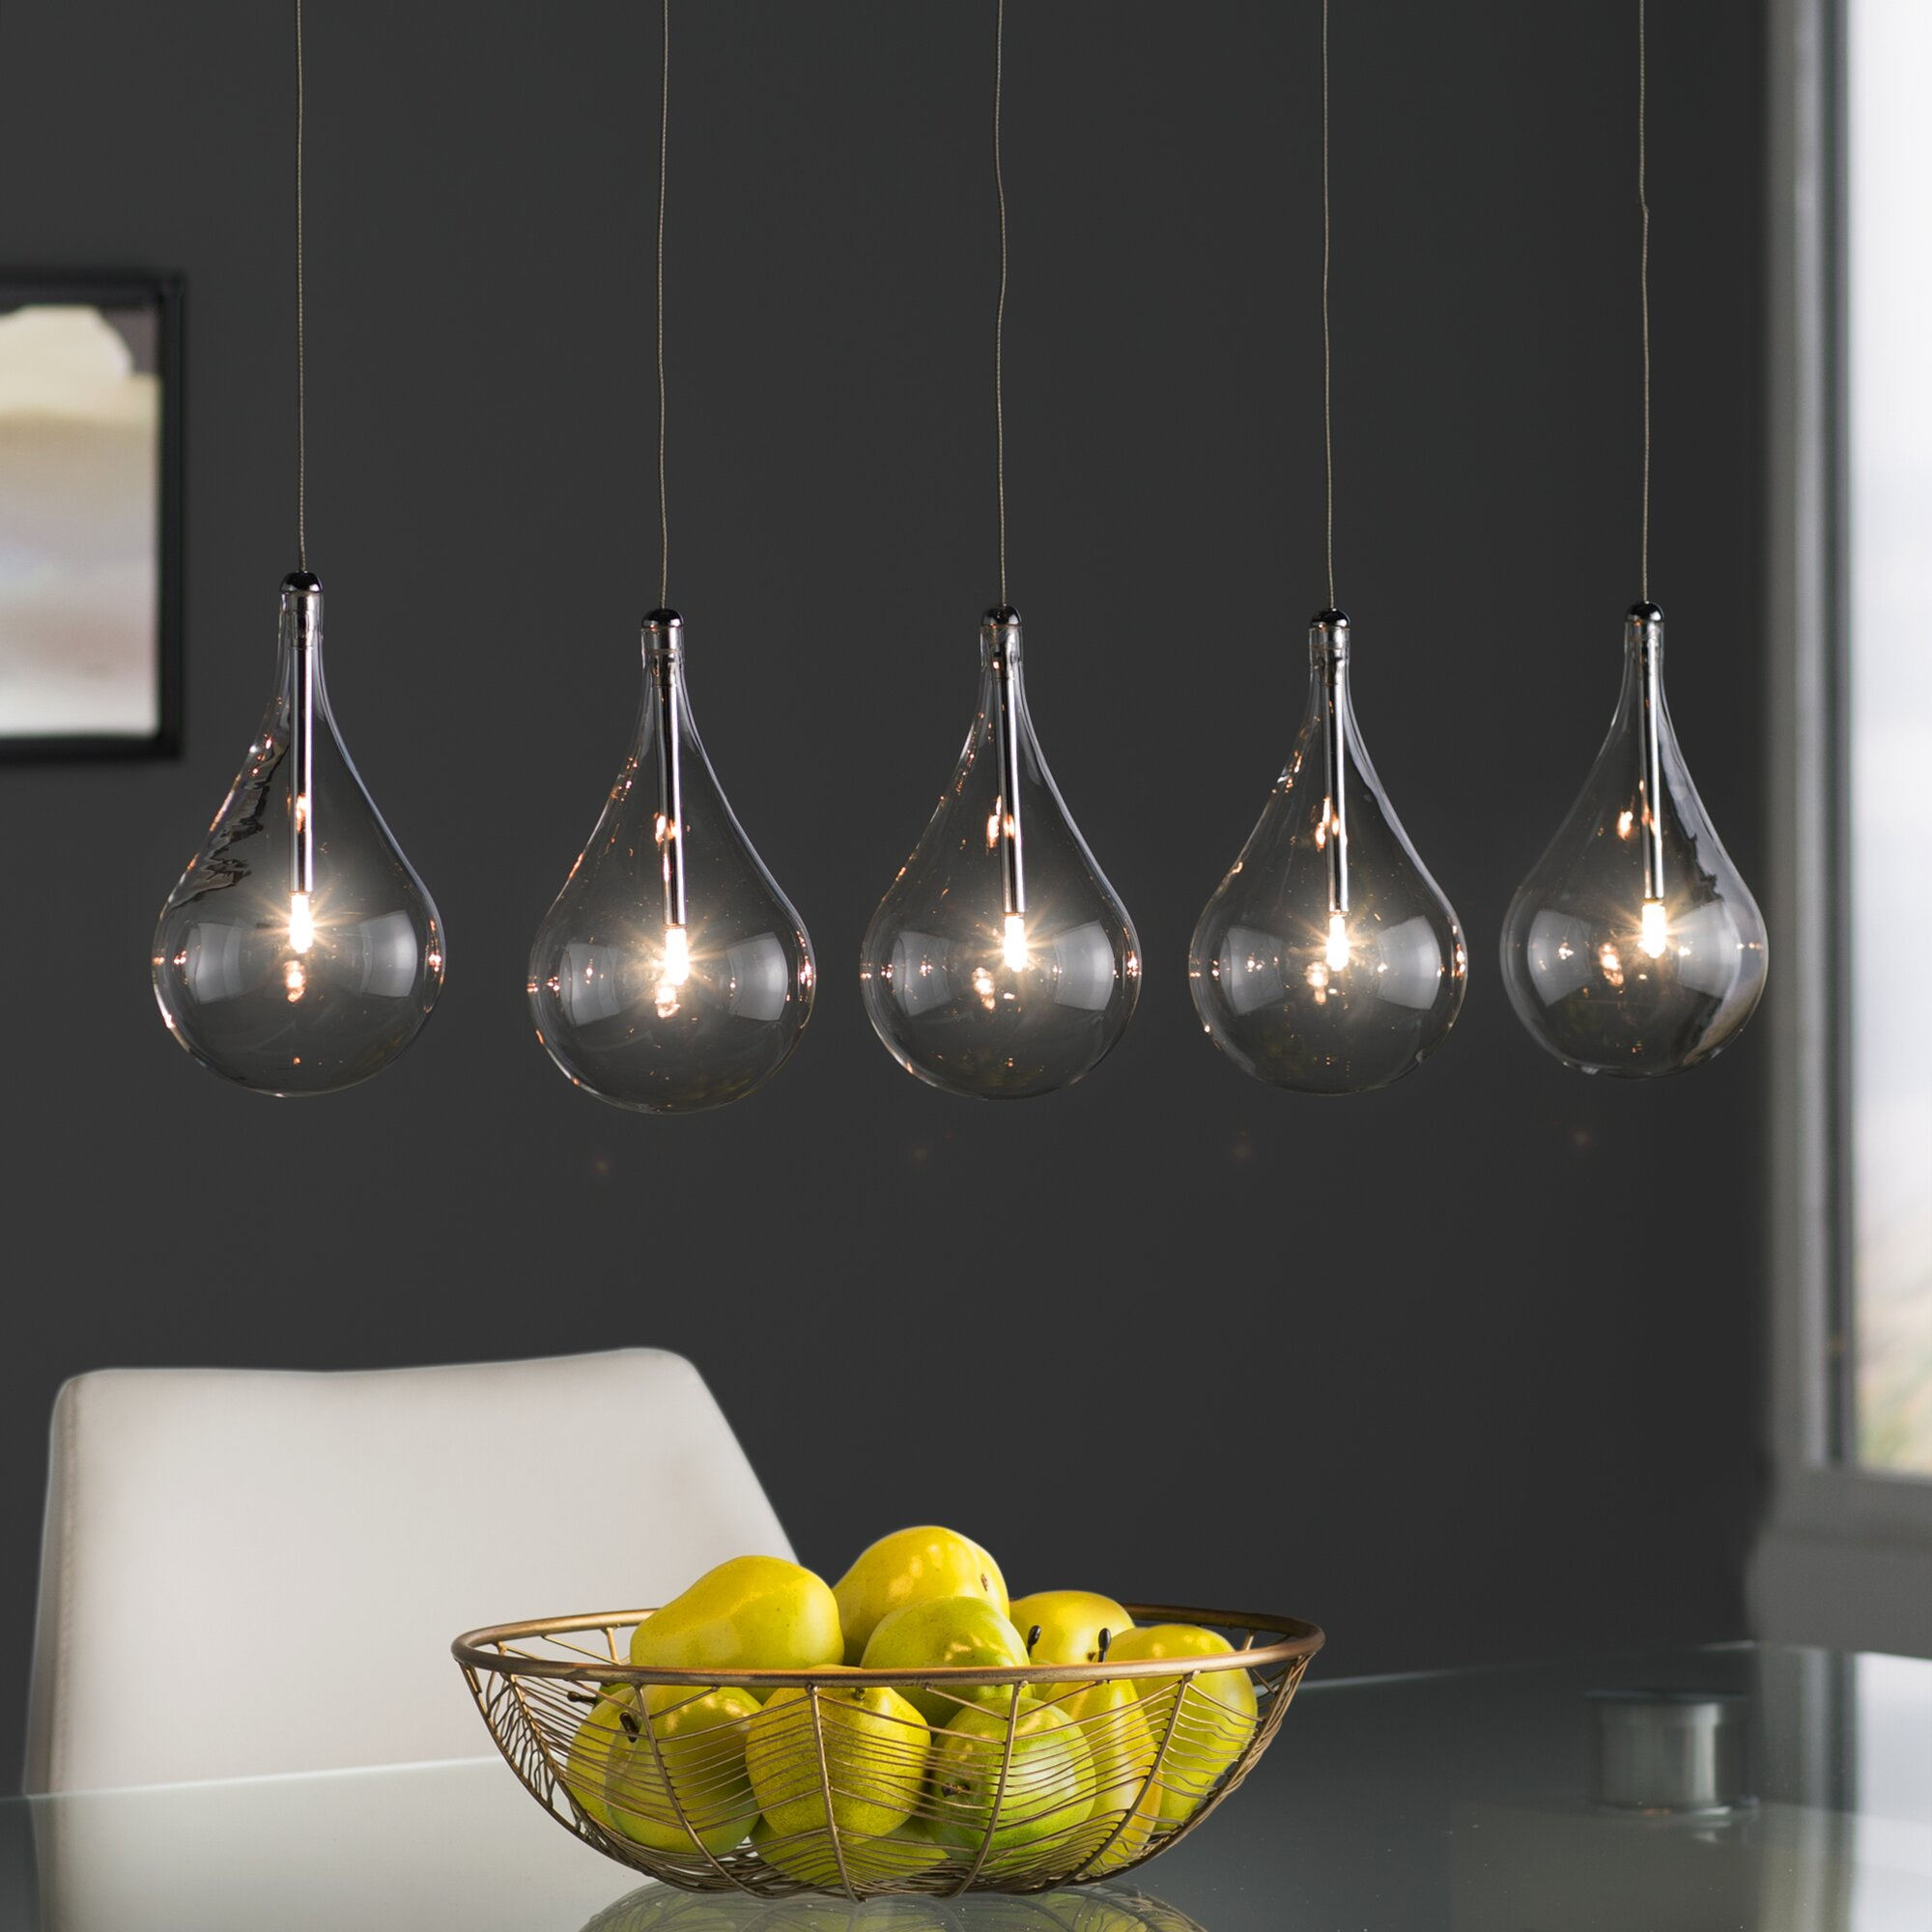 lighting ceiling lights kitchen island pendants wade logan sku